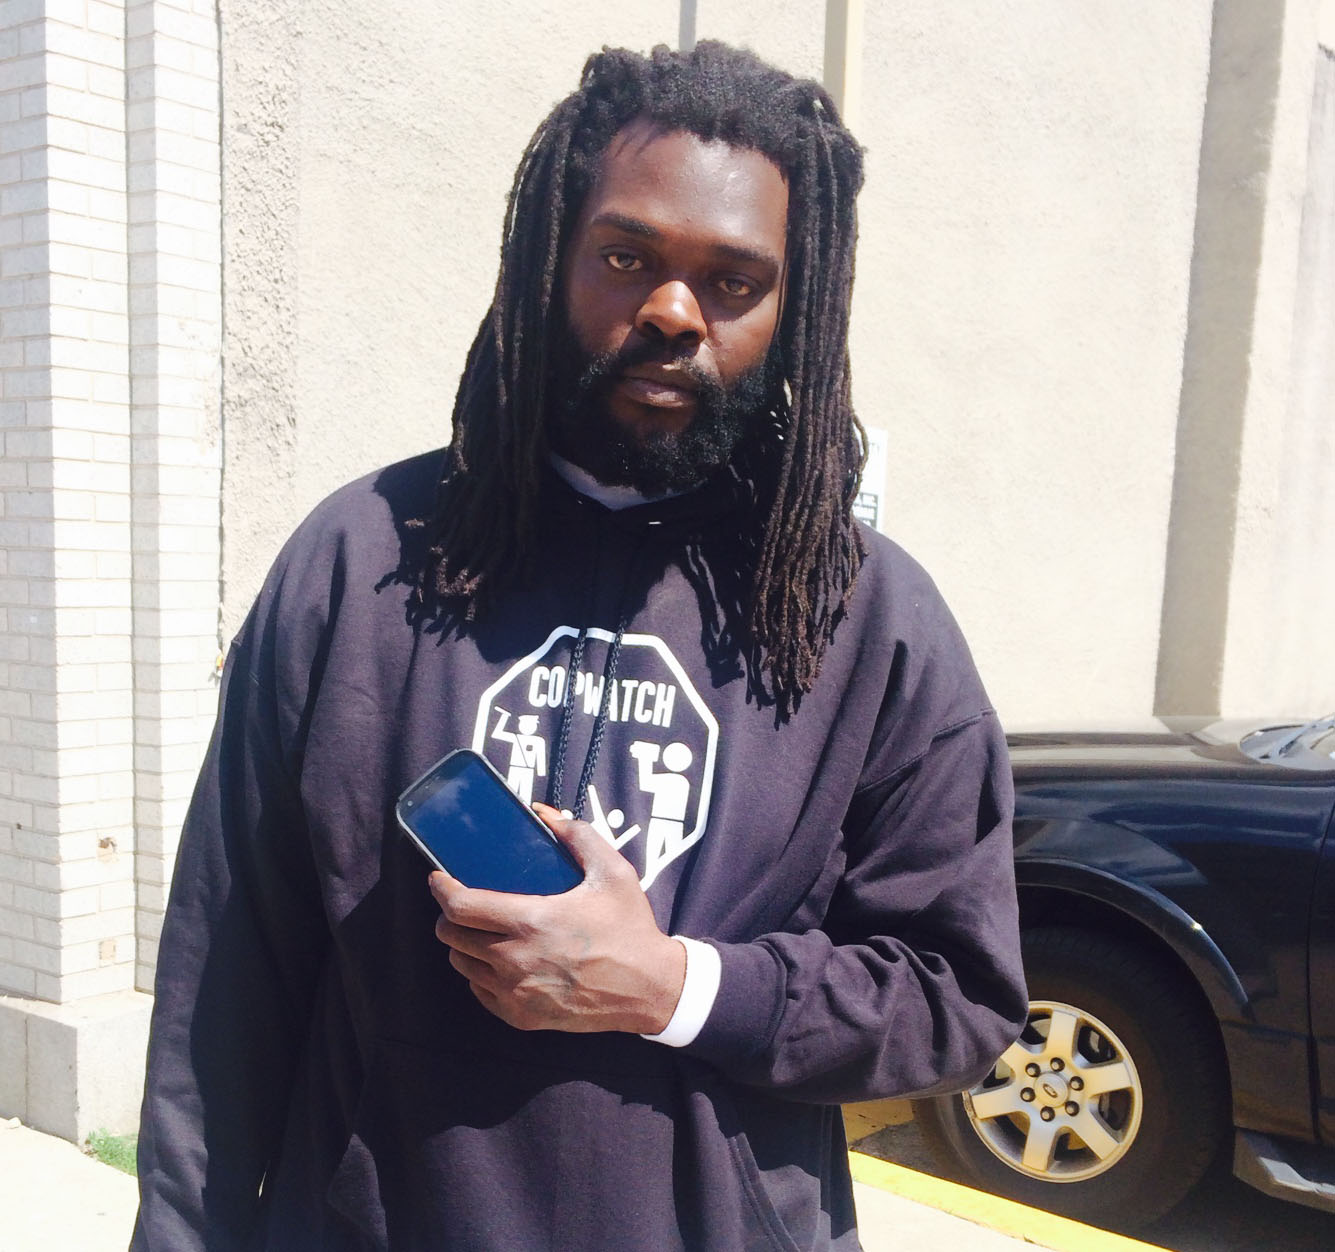 Man who filmed Freddie Gray arrest says he'll keep the camera rolling